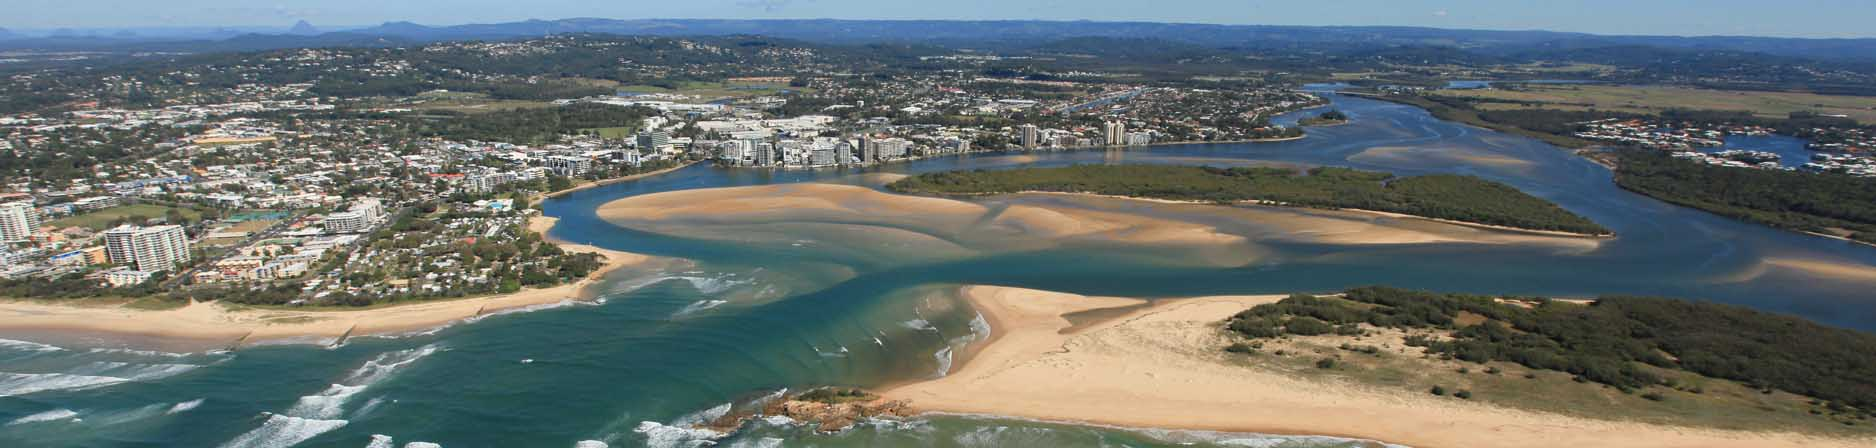 aerial view of Maroochy groyne